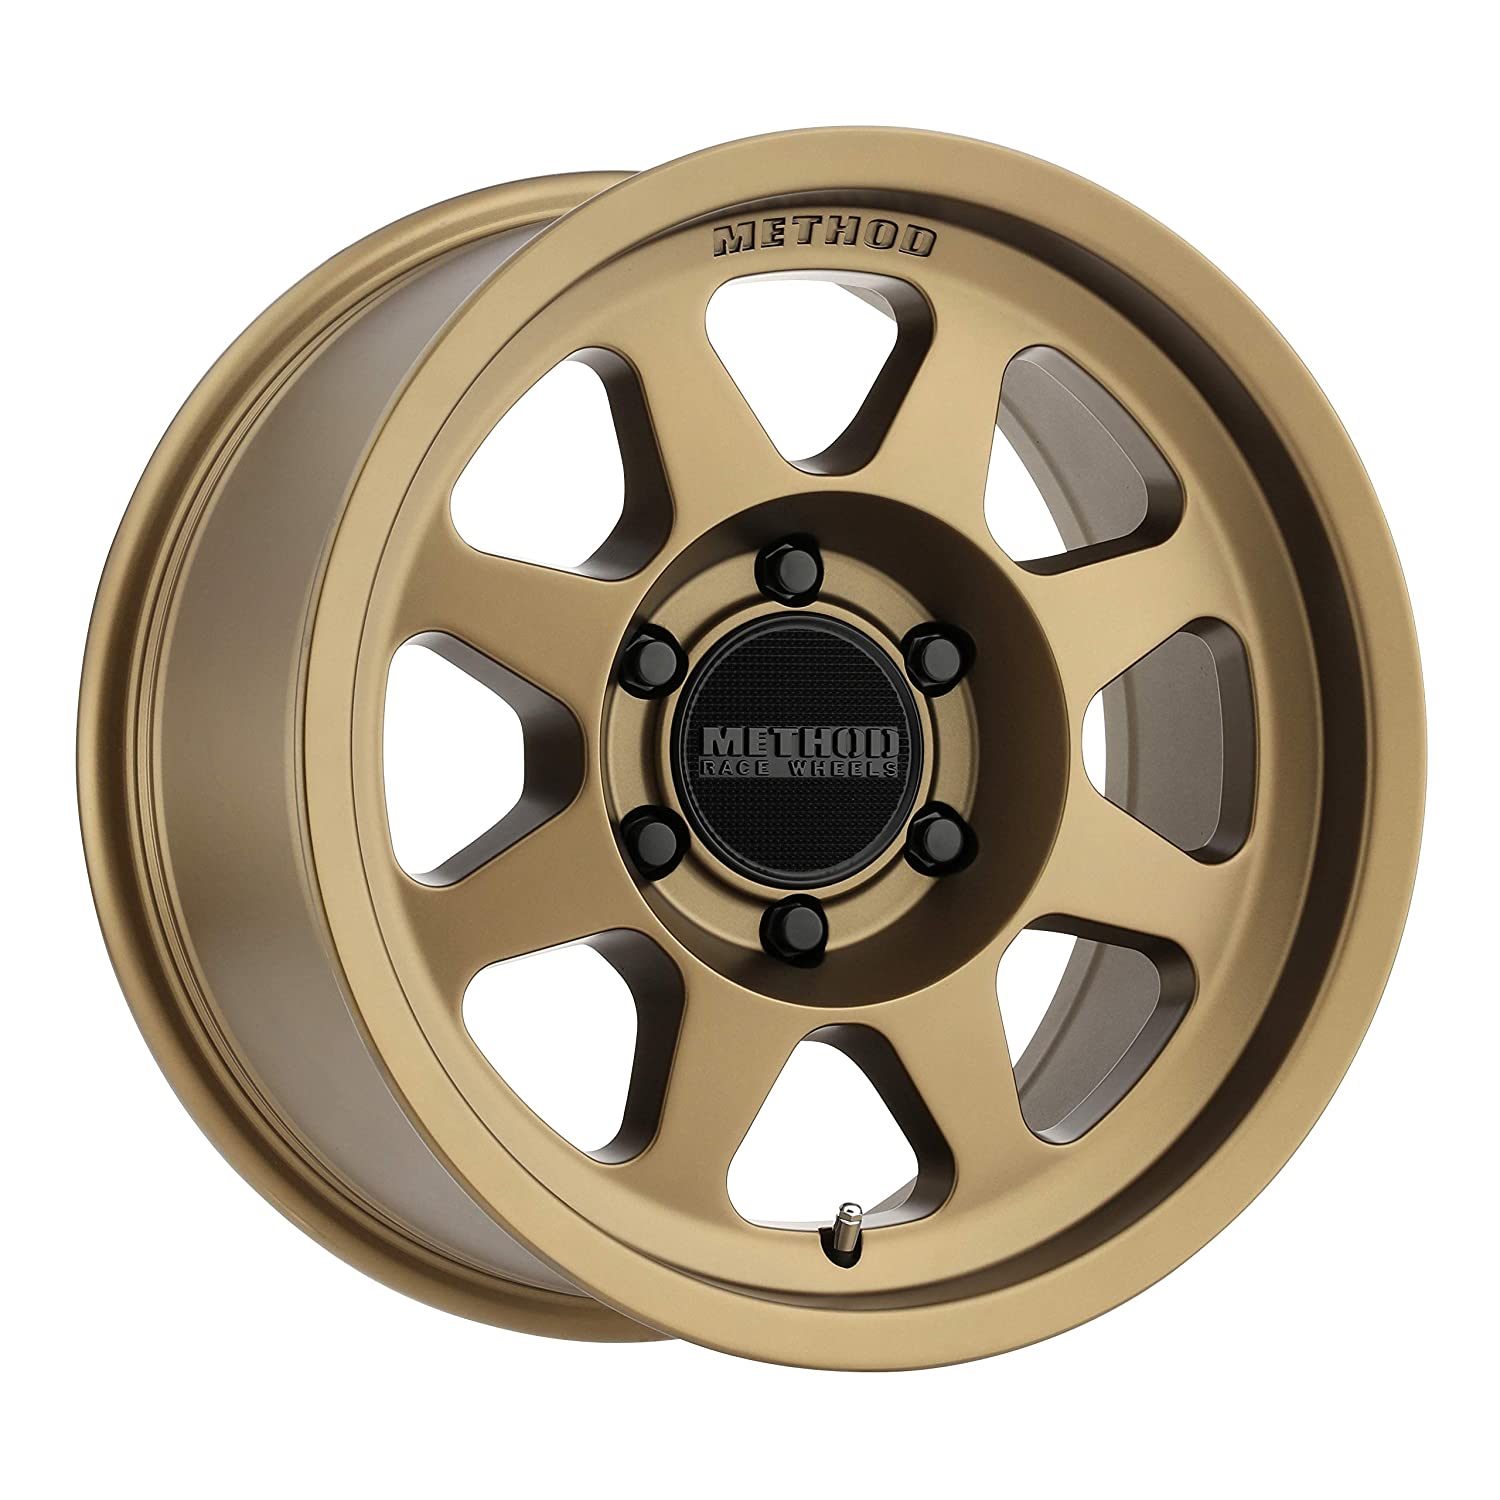 17 x 8.5 inches //8 x 170 mm, 0 mm Offset Method Race Wheels MR701 Method Bronze Wheel with Painted